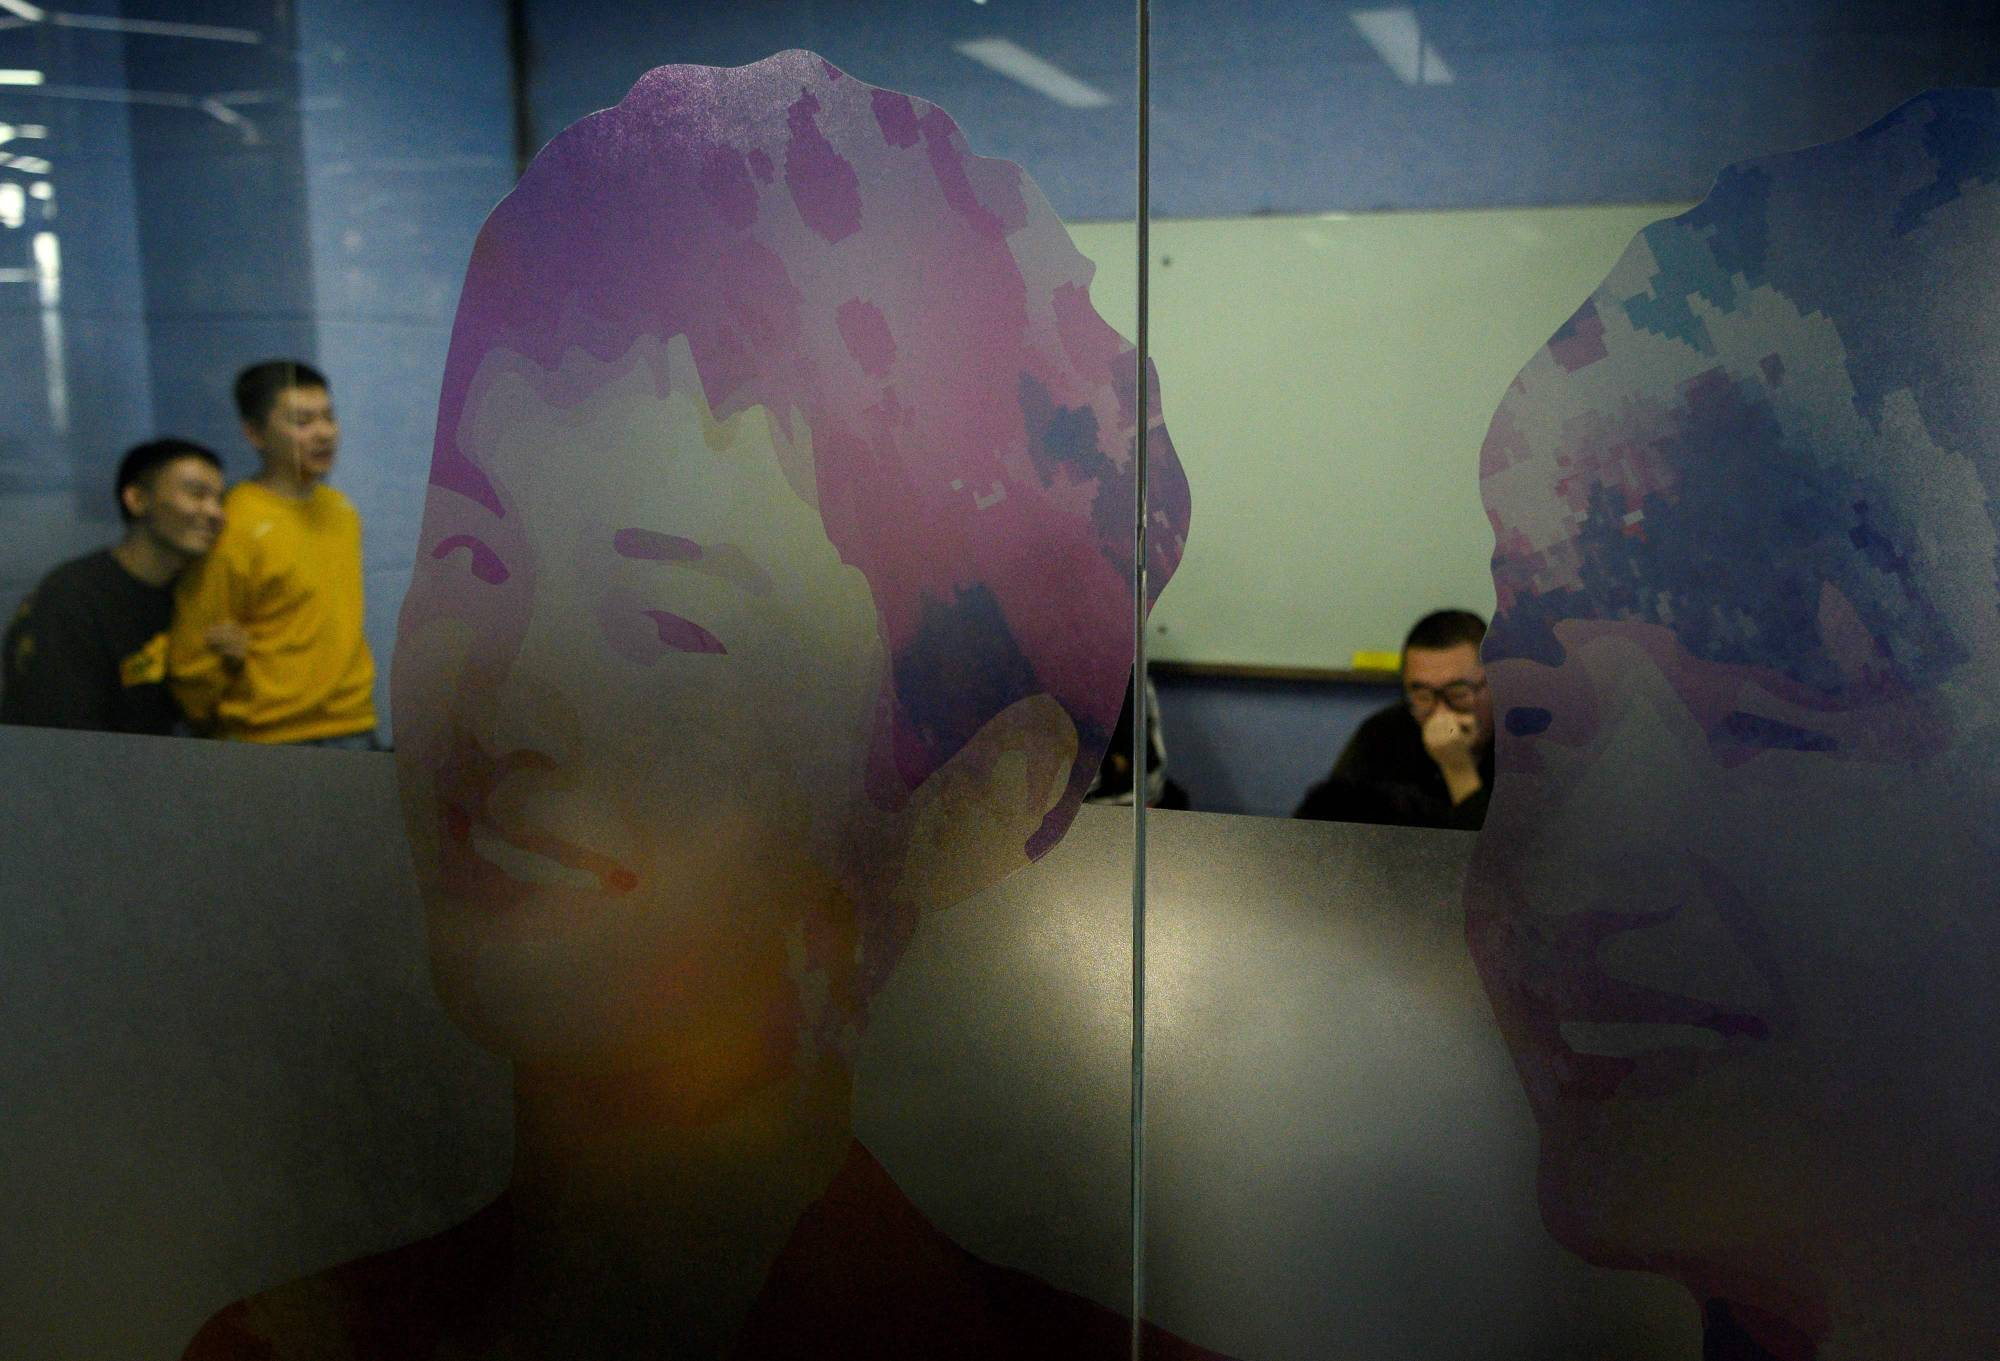 Employees work at the BlueCity headquarters in Beijing in December. The sunlit, crowded offices are filled with rainbow-hued unicorn mascots, gender-neutral toilets and photos of CEO Ma Baoli's meetings with dignitaries including China's premier Li Keqiang. | AFP-JIJI